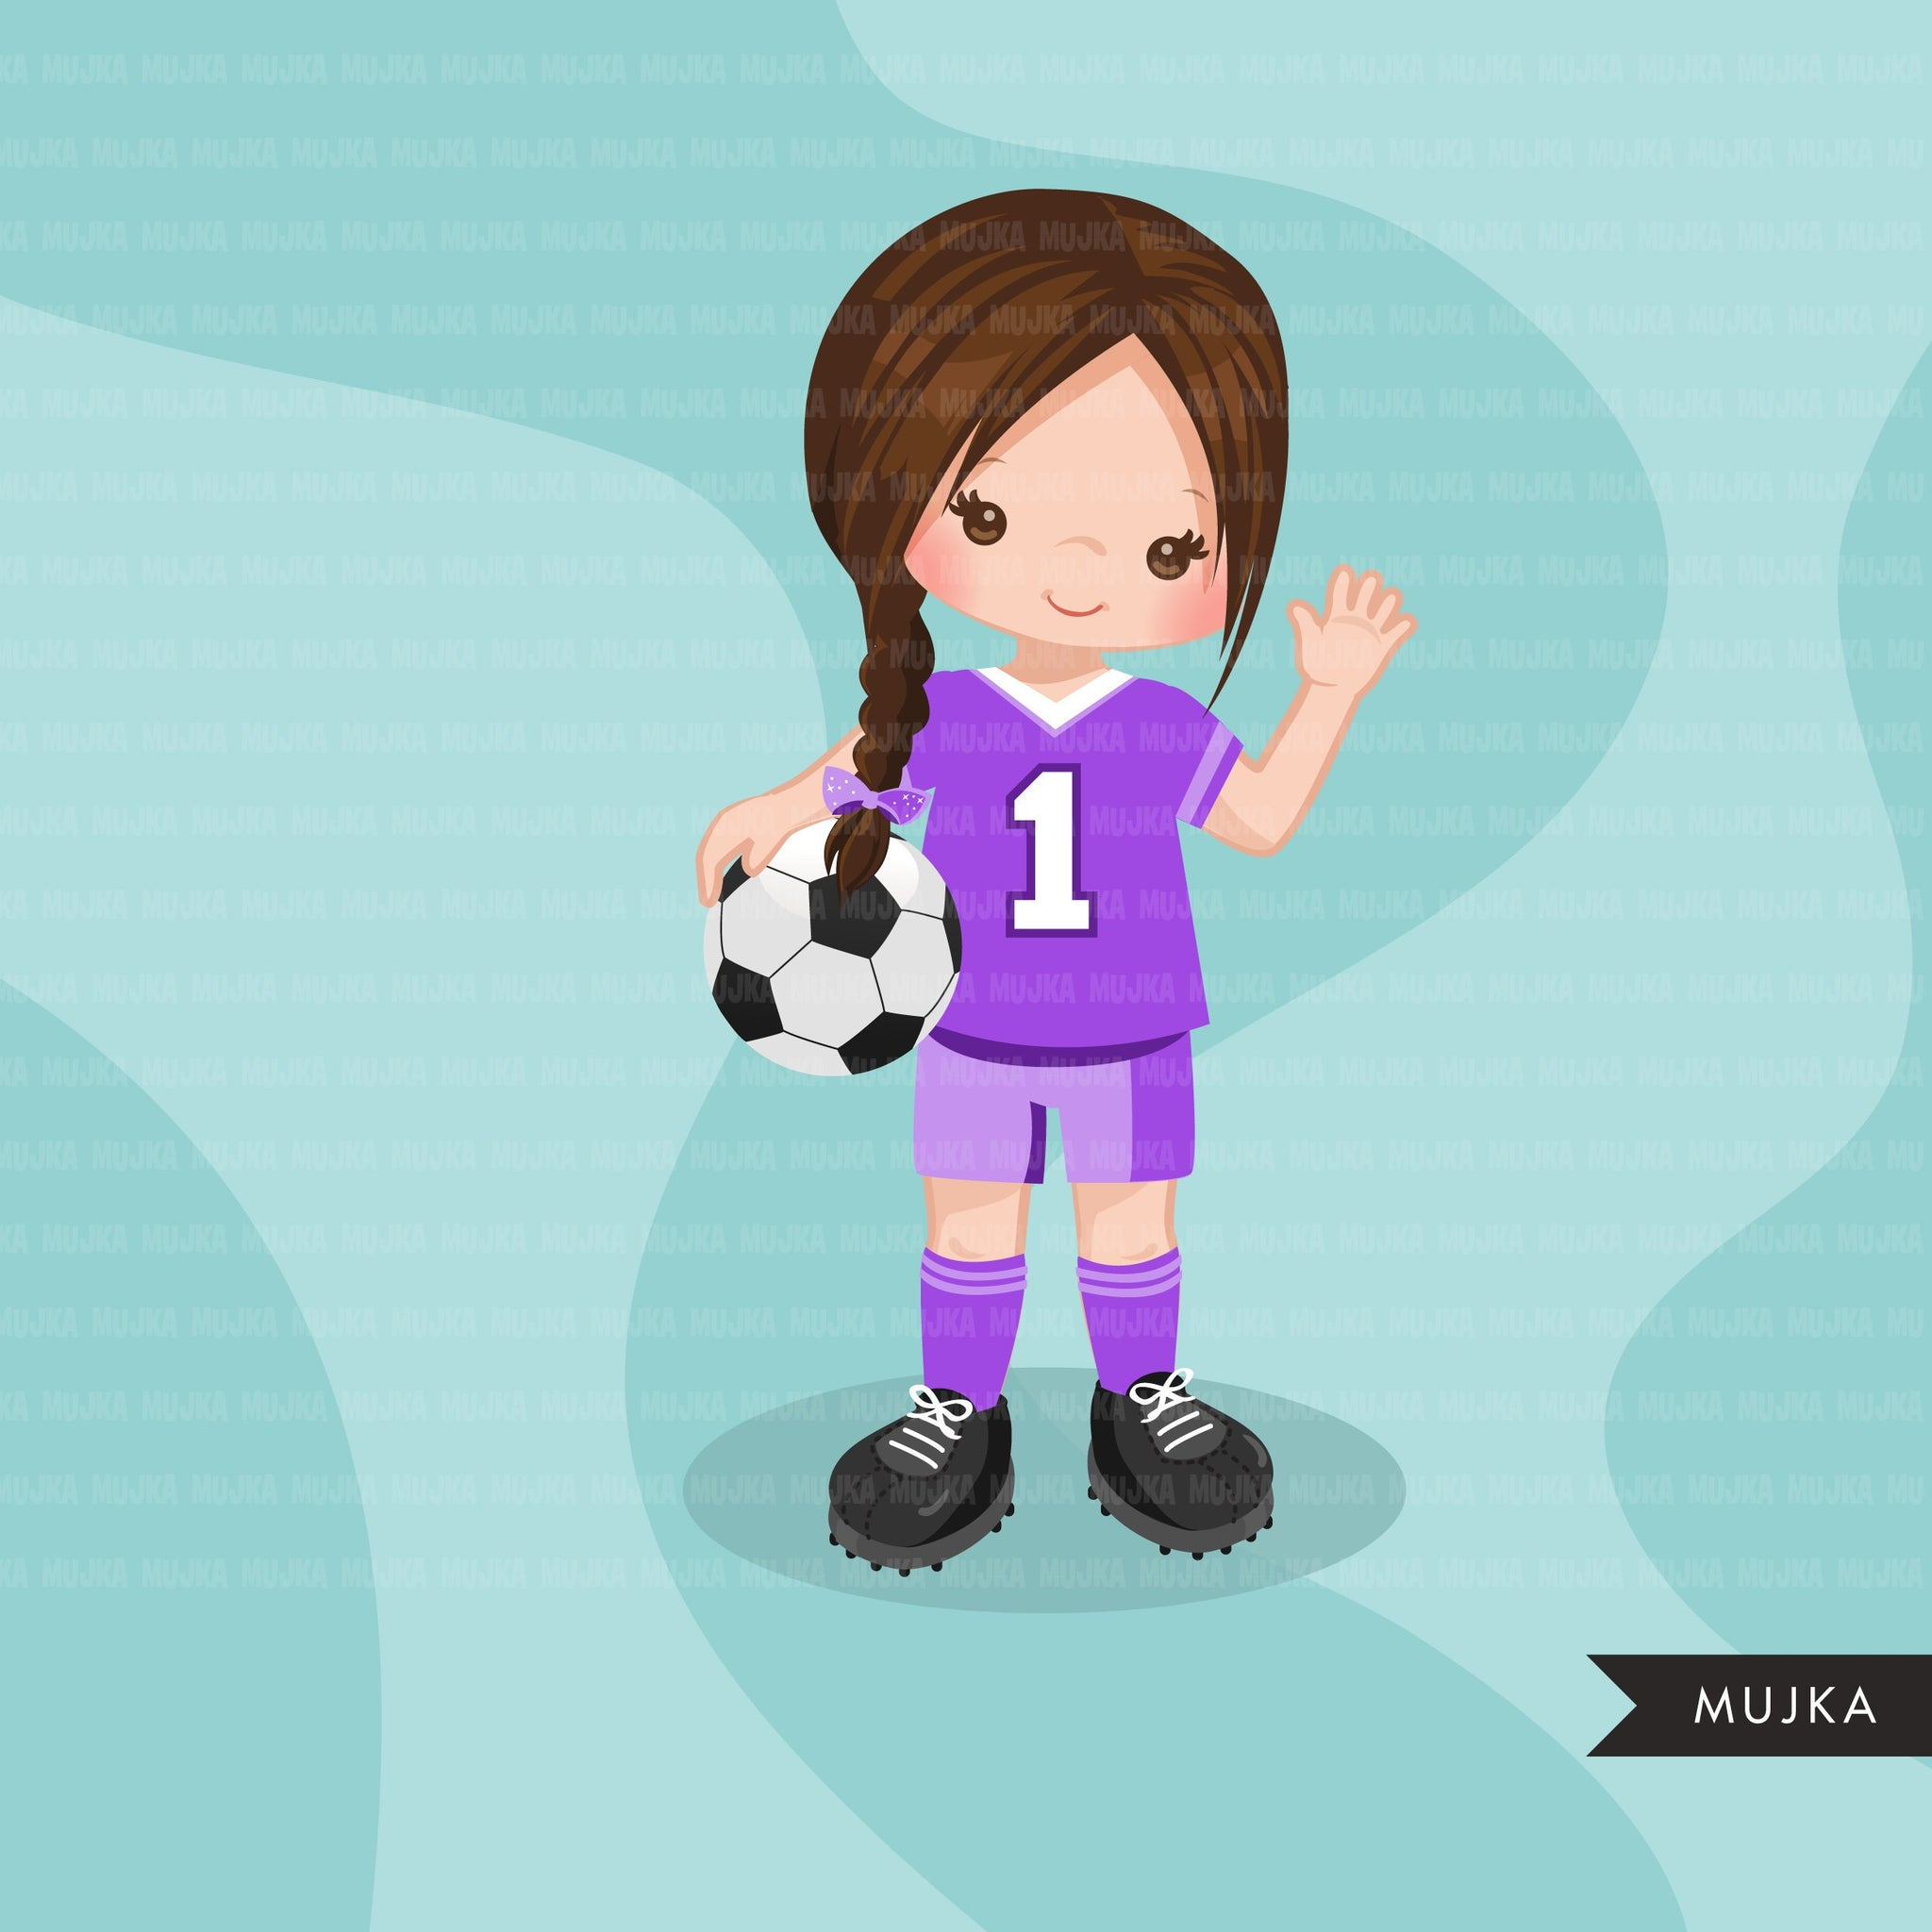 Soccer clipart, girl in purple jersey